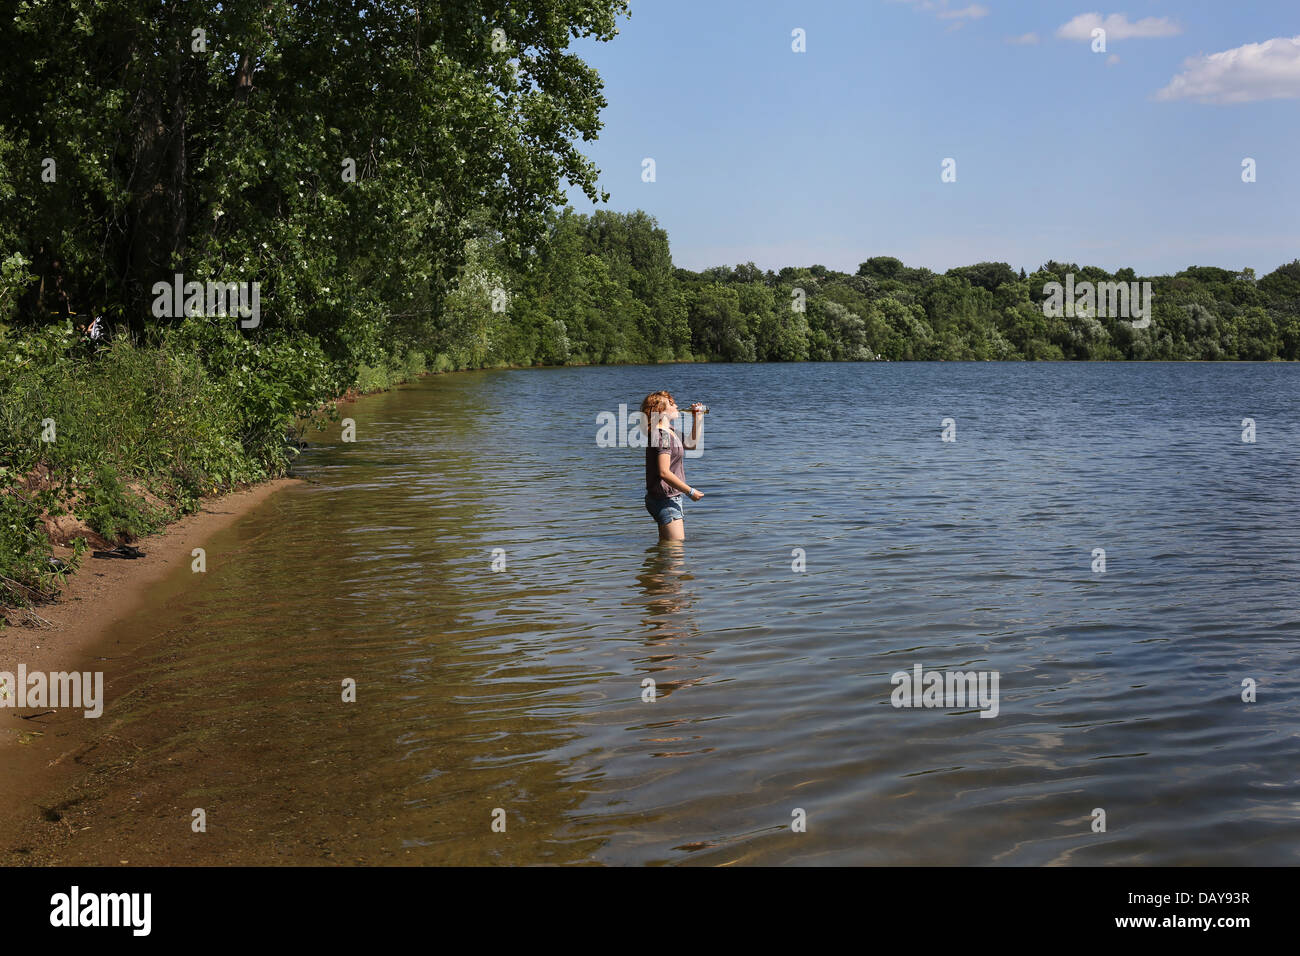 A teen girl standing in a lake and drinking a beverage from a bottle. - Stock Image